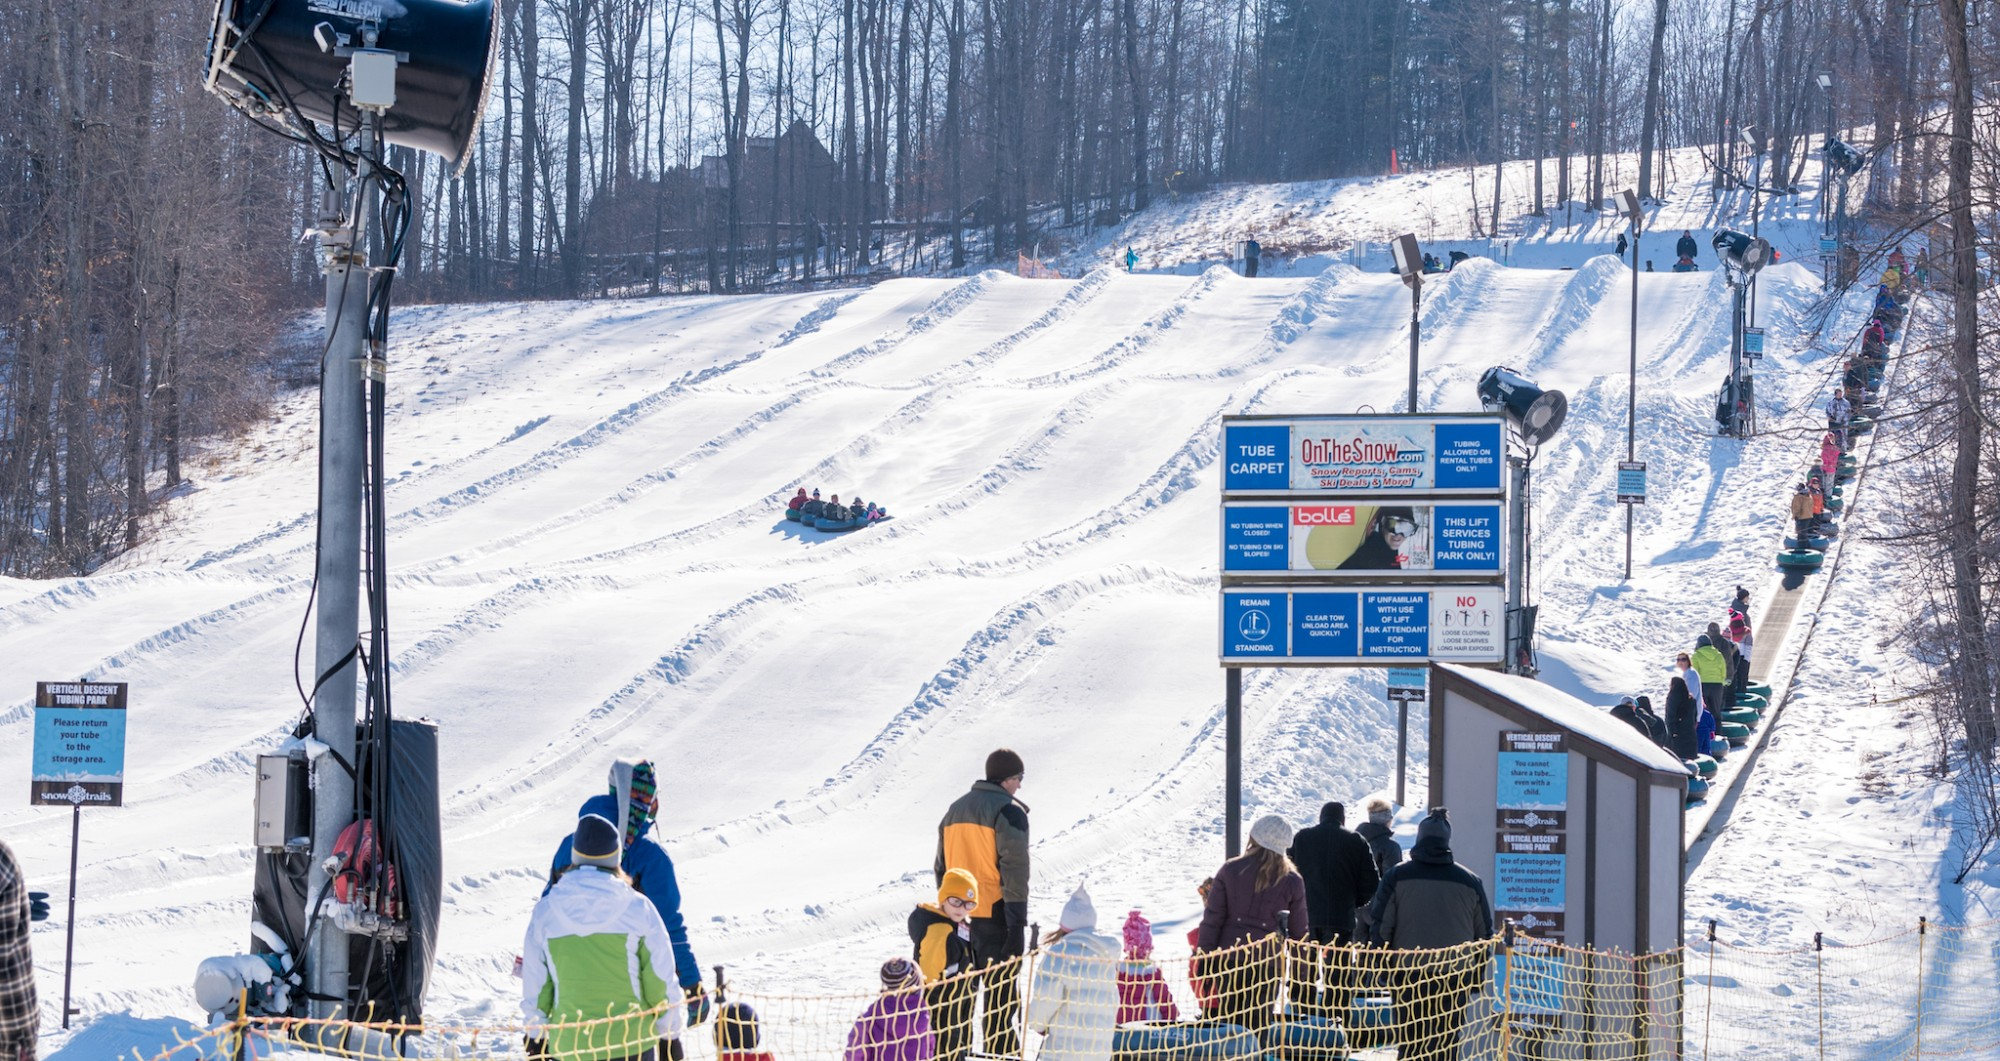 Snow Trails Vertical Descent Tubing Park lanes and conveyor carpet lift